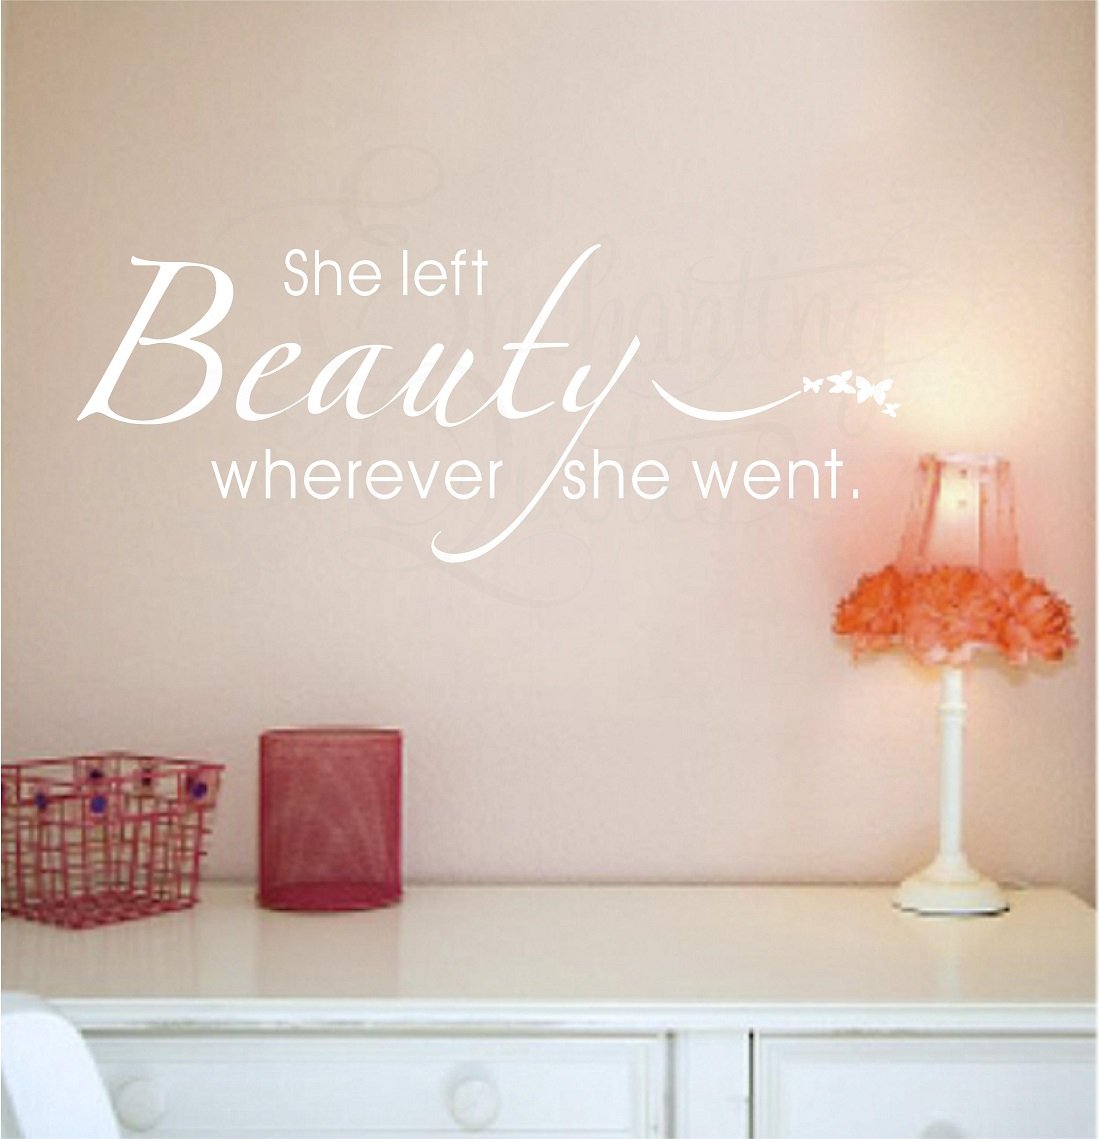 Best 25 vinyl wall quotes ideas on pinterest family wall quotes inspirational wall quotes vinyl wall quotes motivational sayings vinyl wall decals quotes amipublicfo Image collections